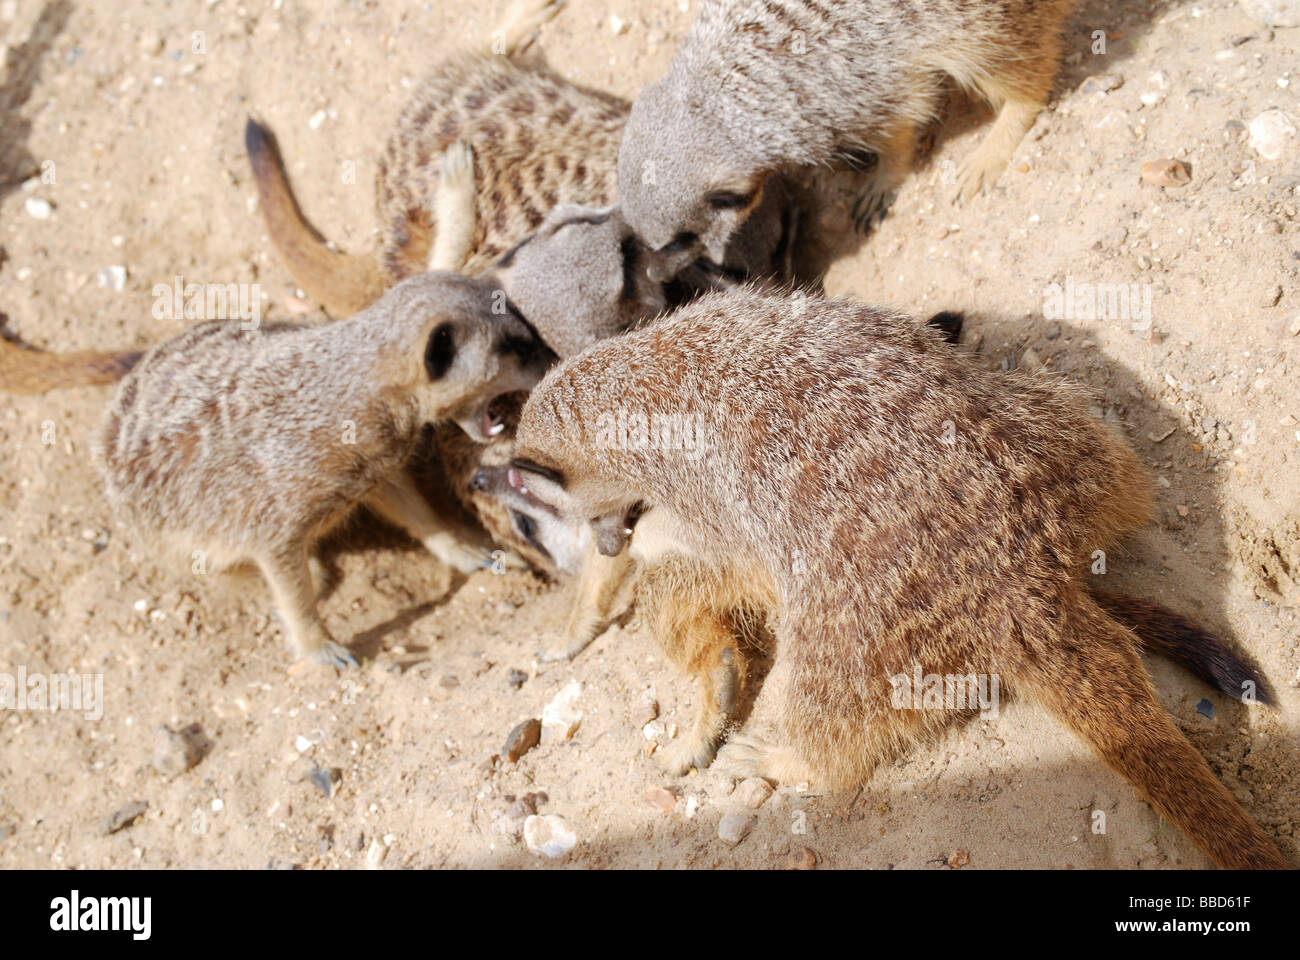 Meerkats fighting to establish dominance within the mob - Stock Image